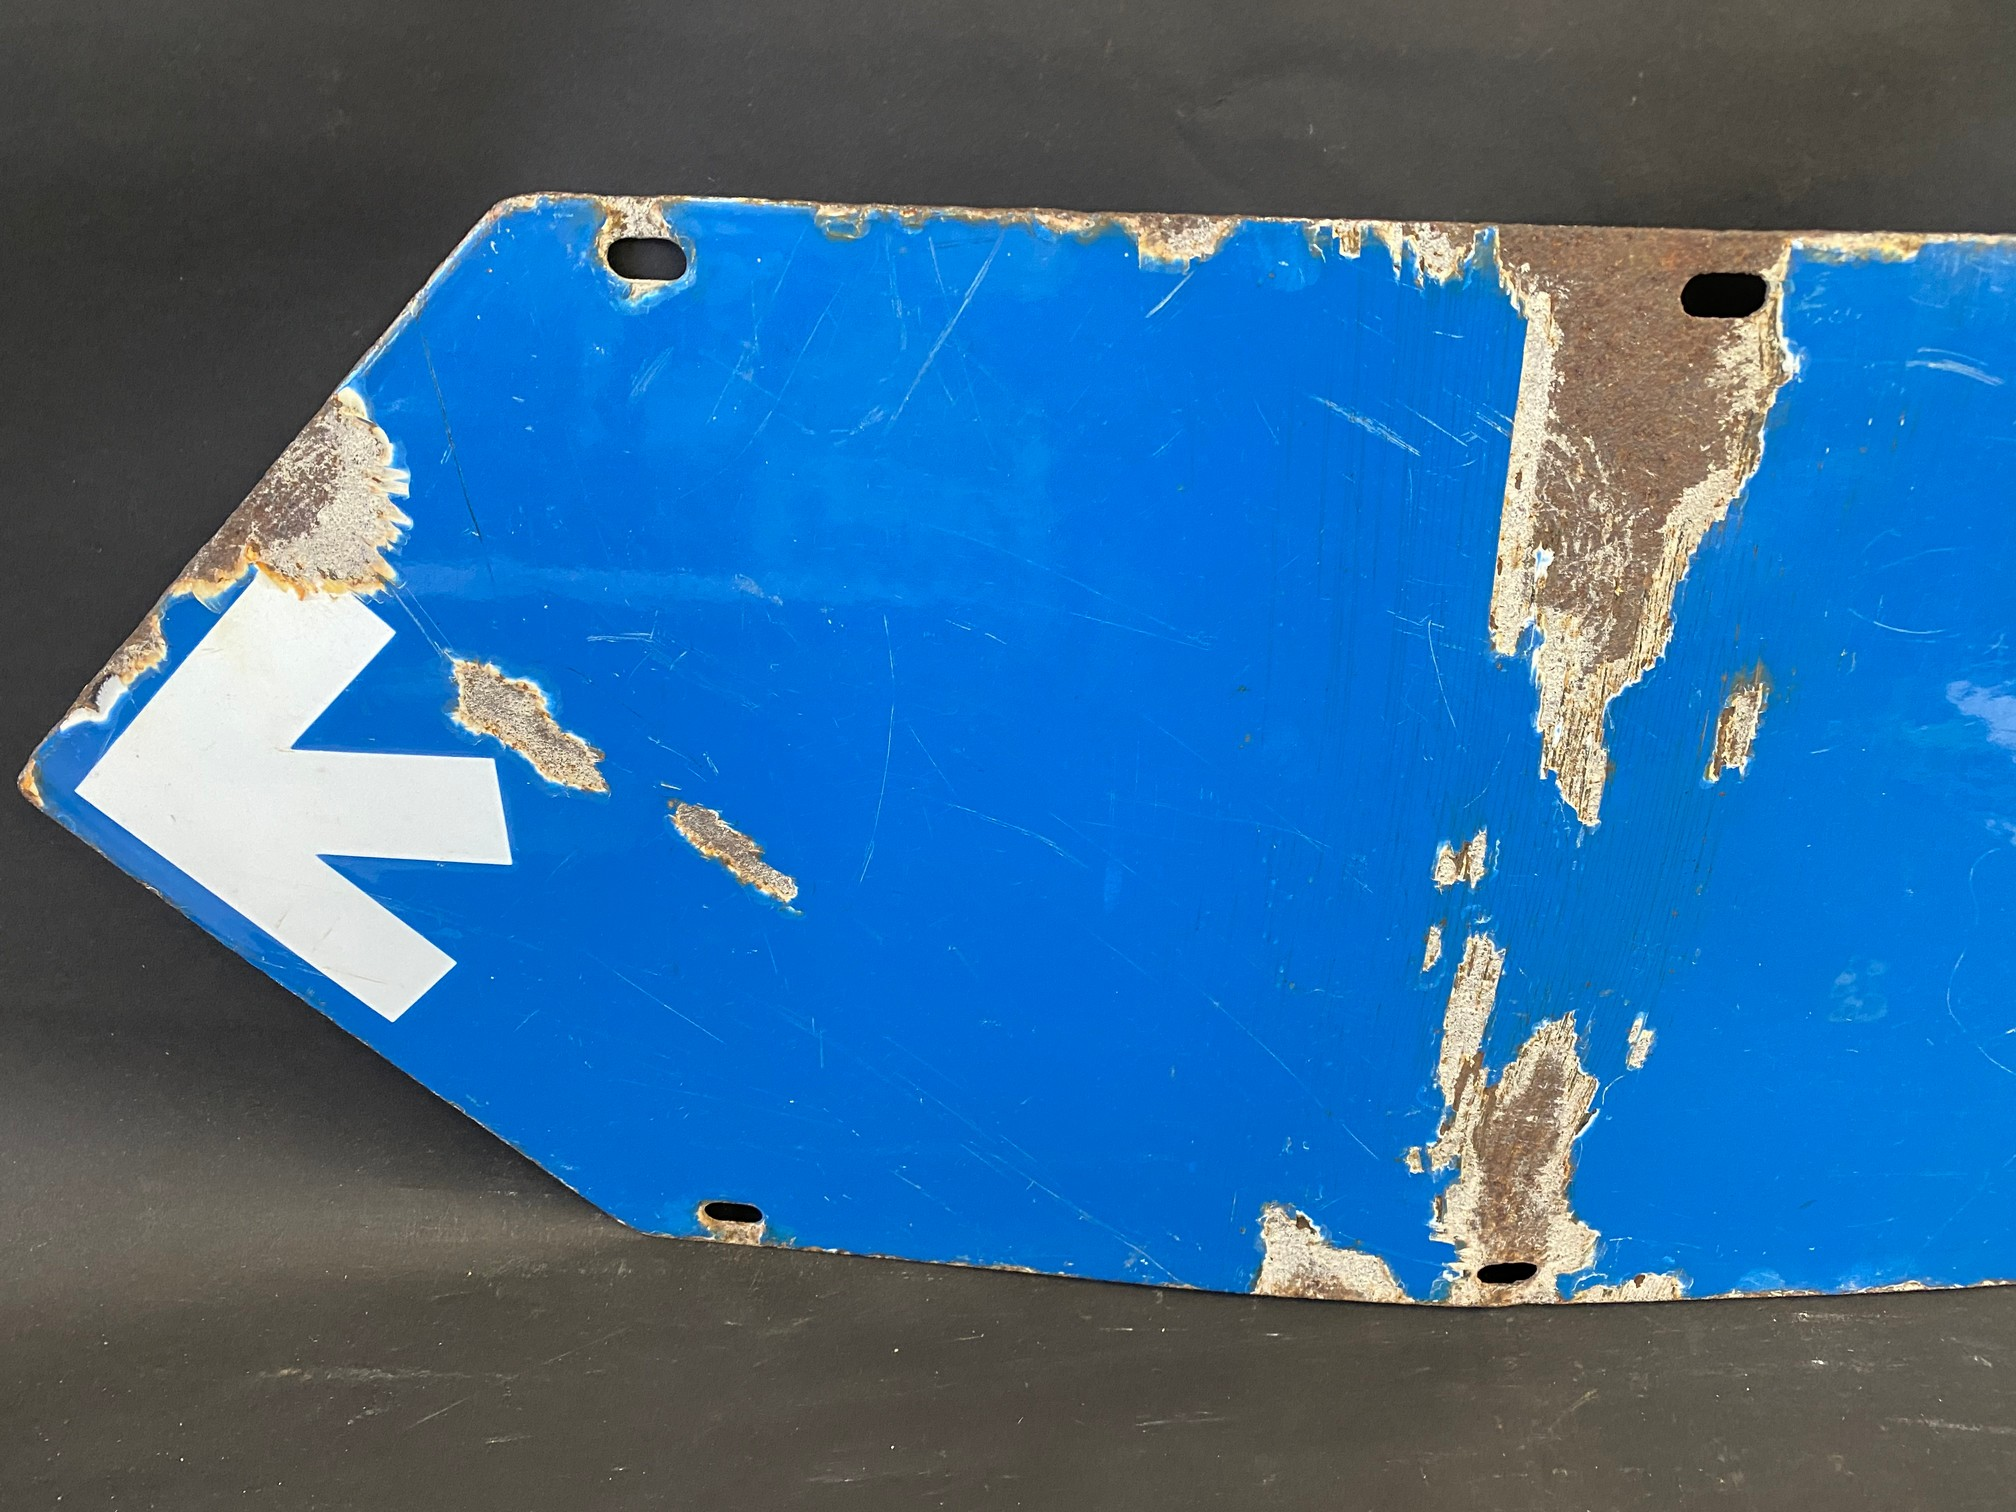 """An RAC blue and white double sided directional arrow sign by Bruton, 353/4 x 12"""". - Image 3 of 4"""